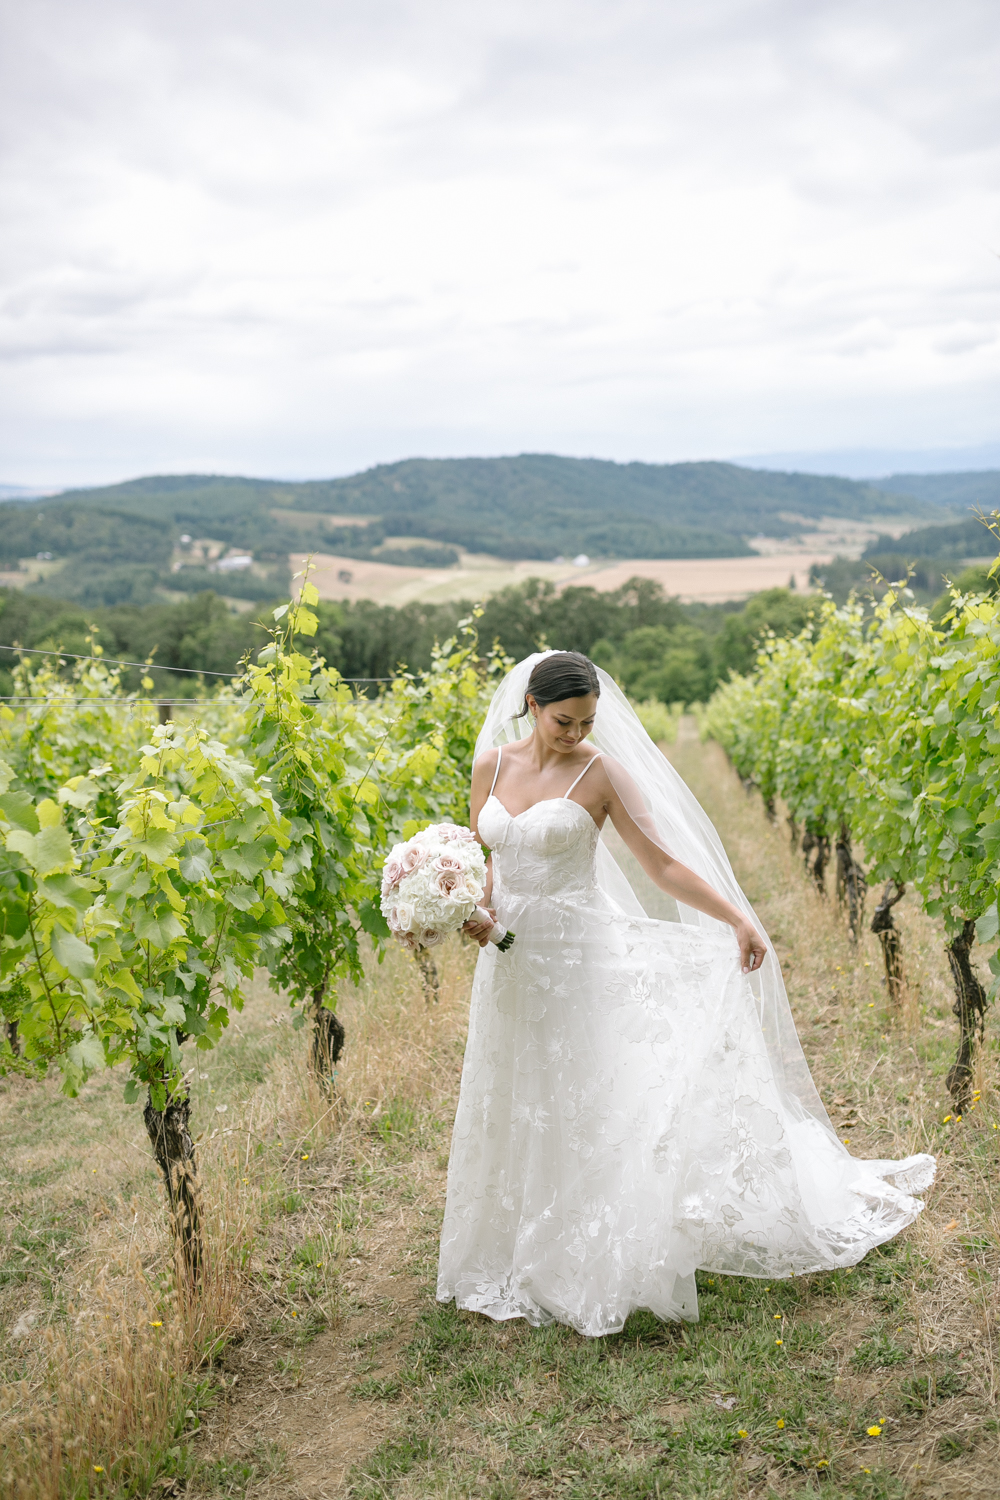 Youngberg Hill Vineyard Wedding in Wine Country Oregon - Corrie Mick Photography-71.jpg